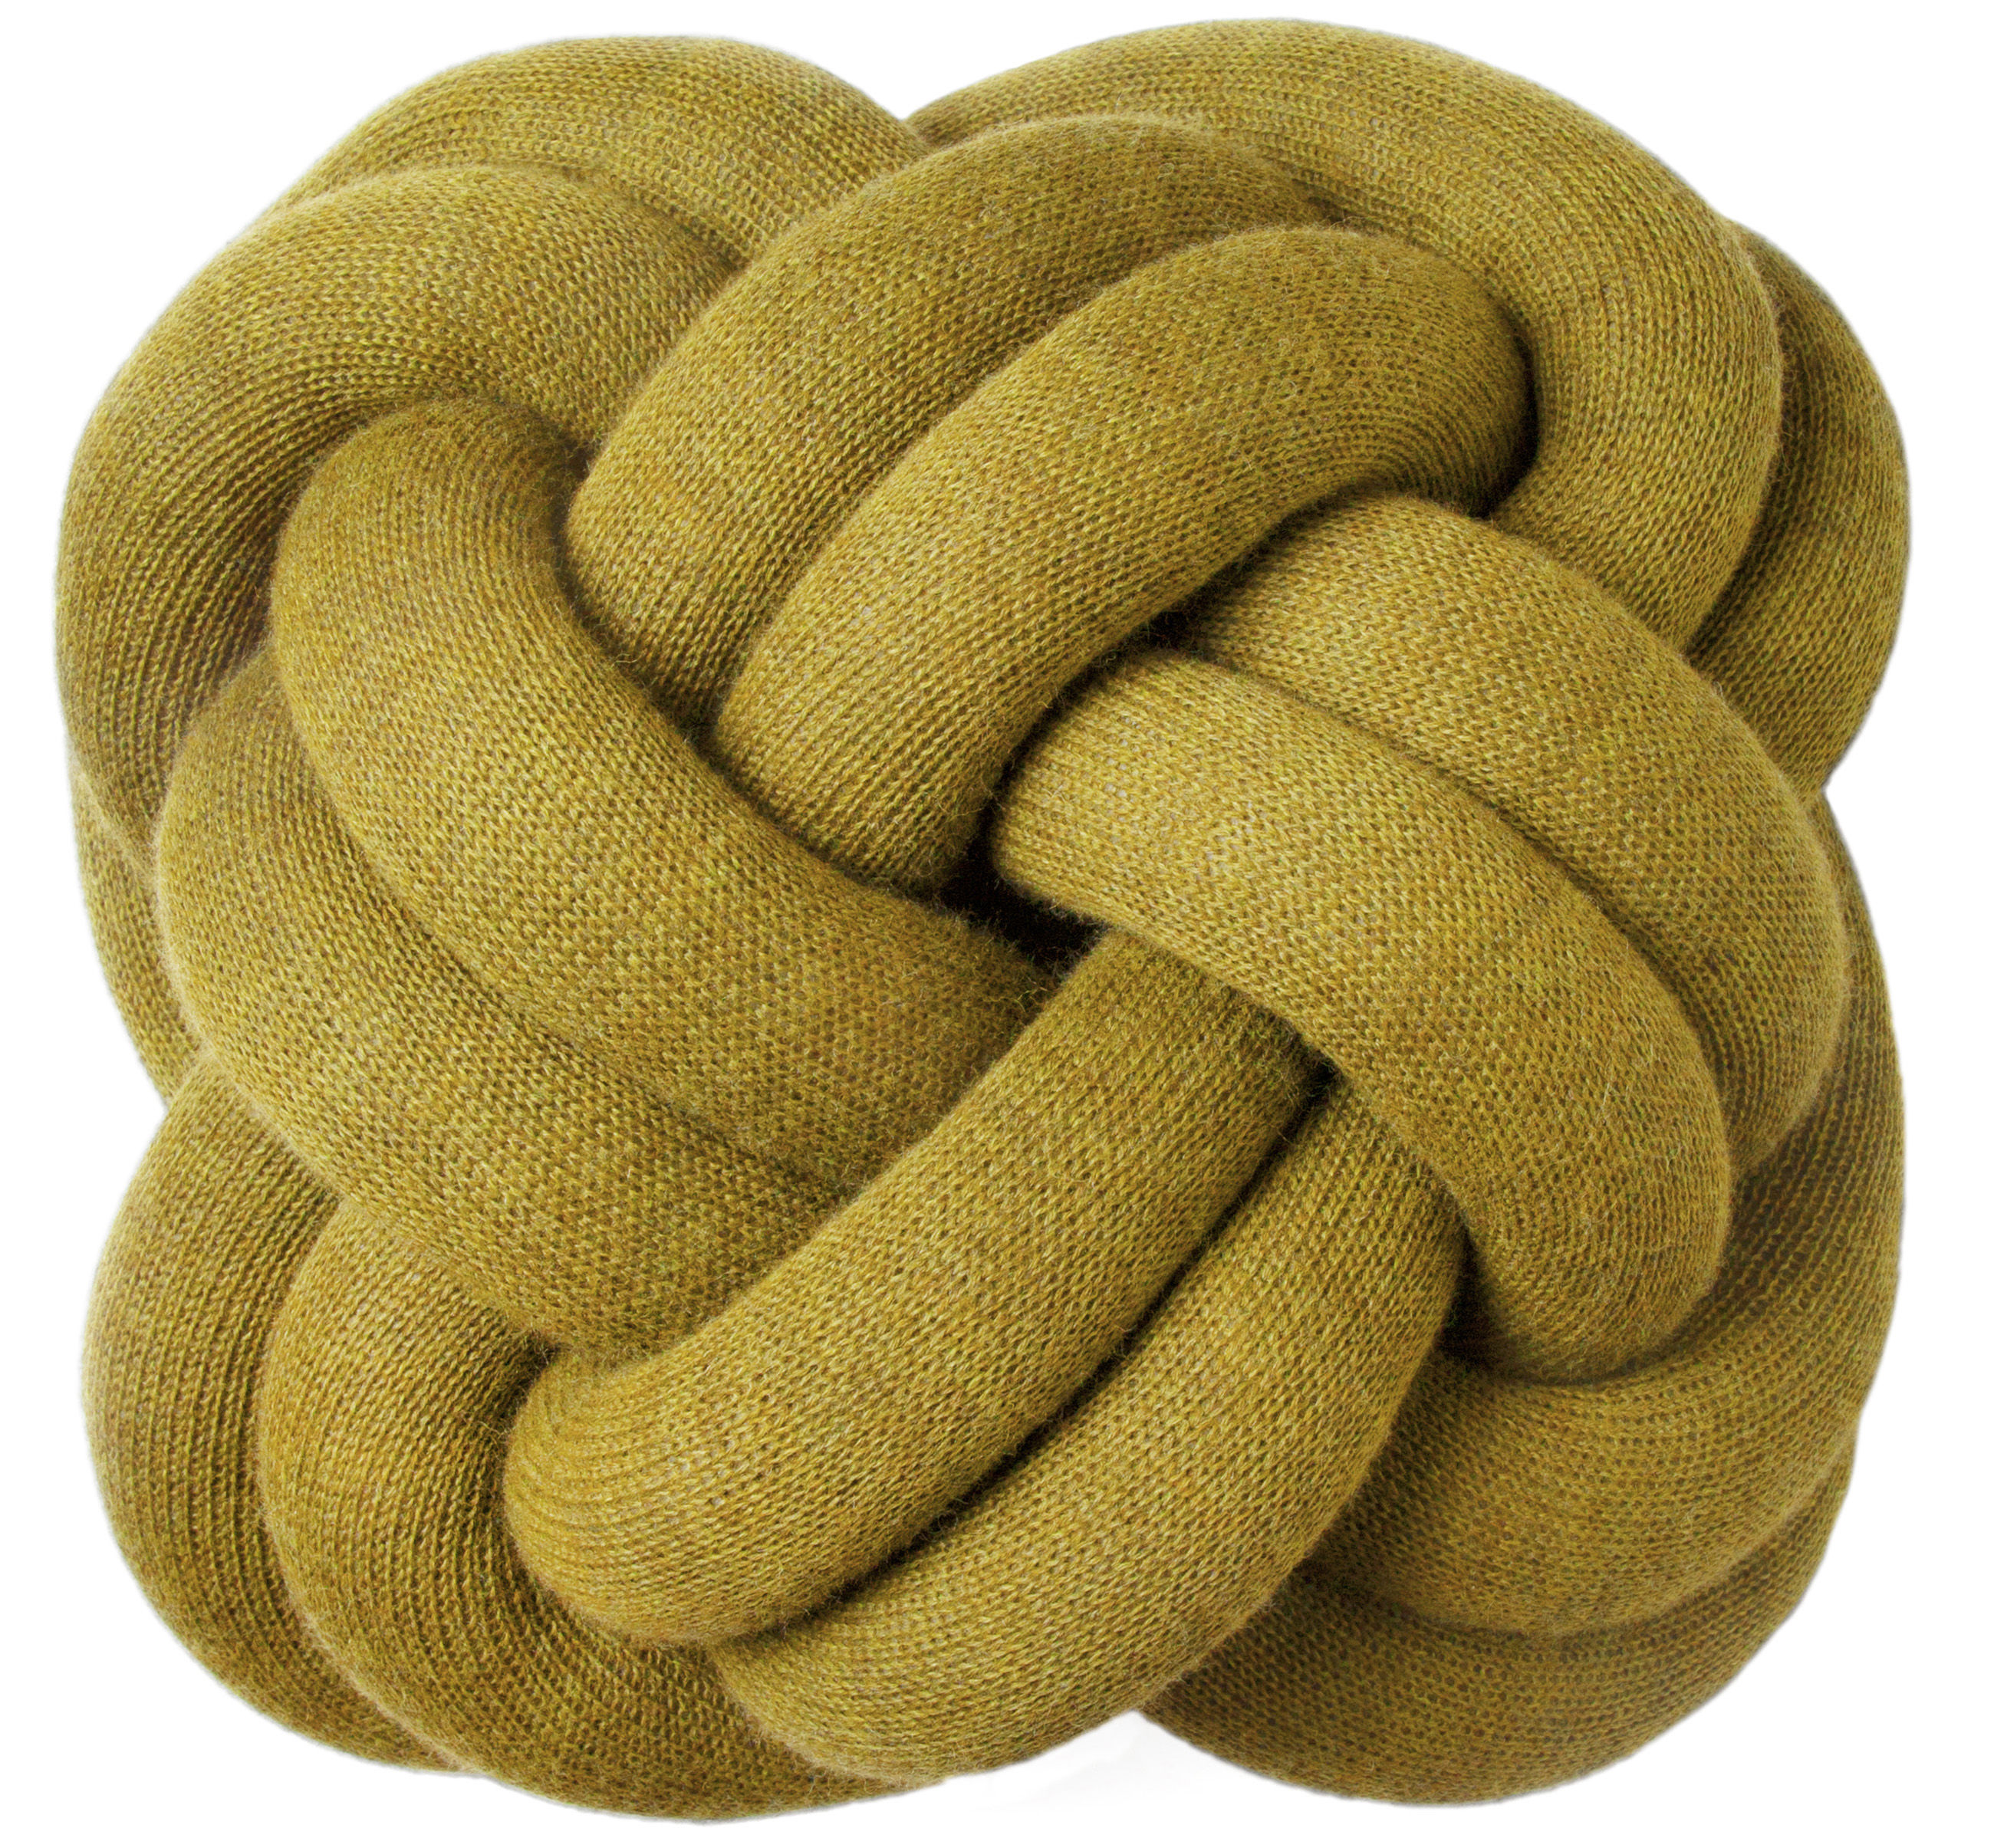 Decoration - Cushions & Poufs - Knot Cushion by Design House Stockholm - Yellow - Fabric